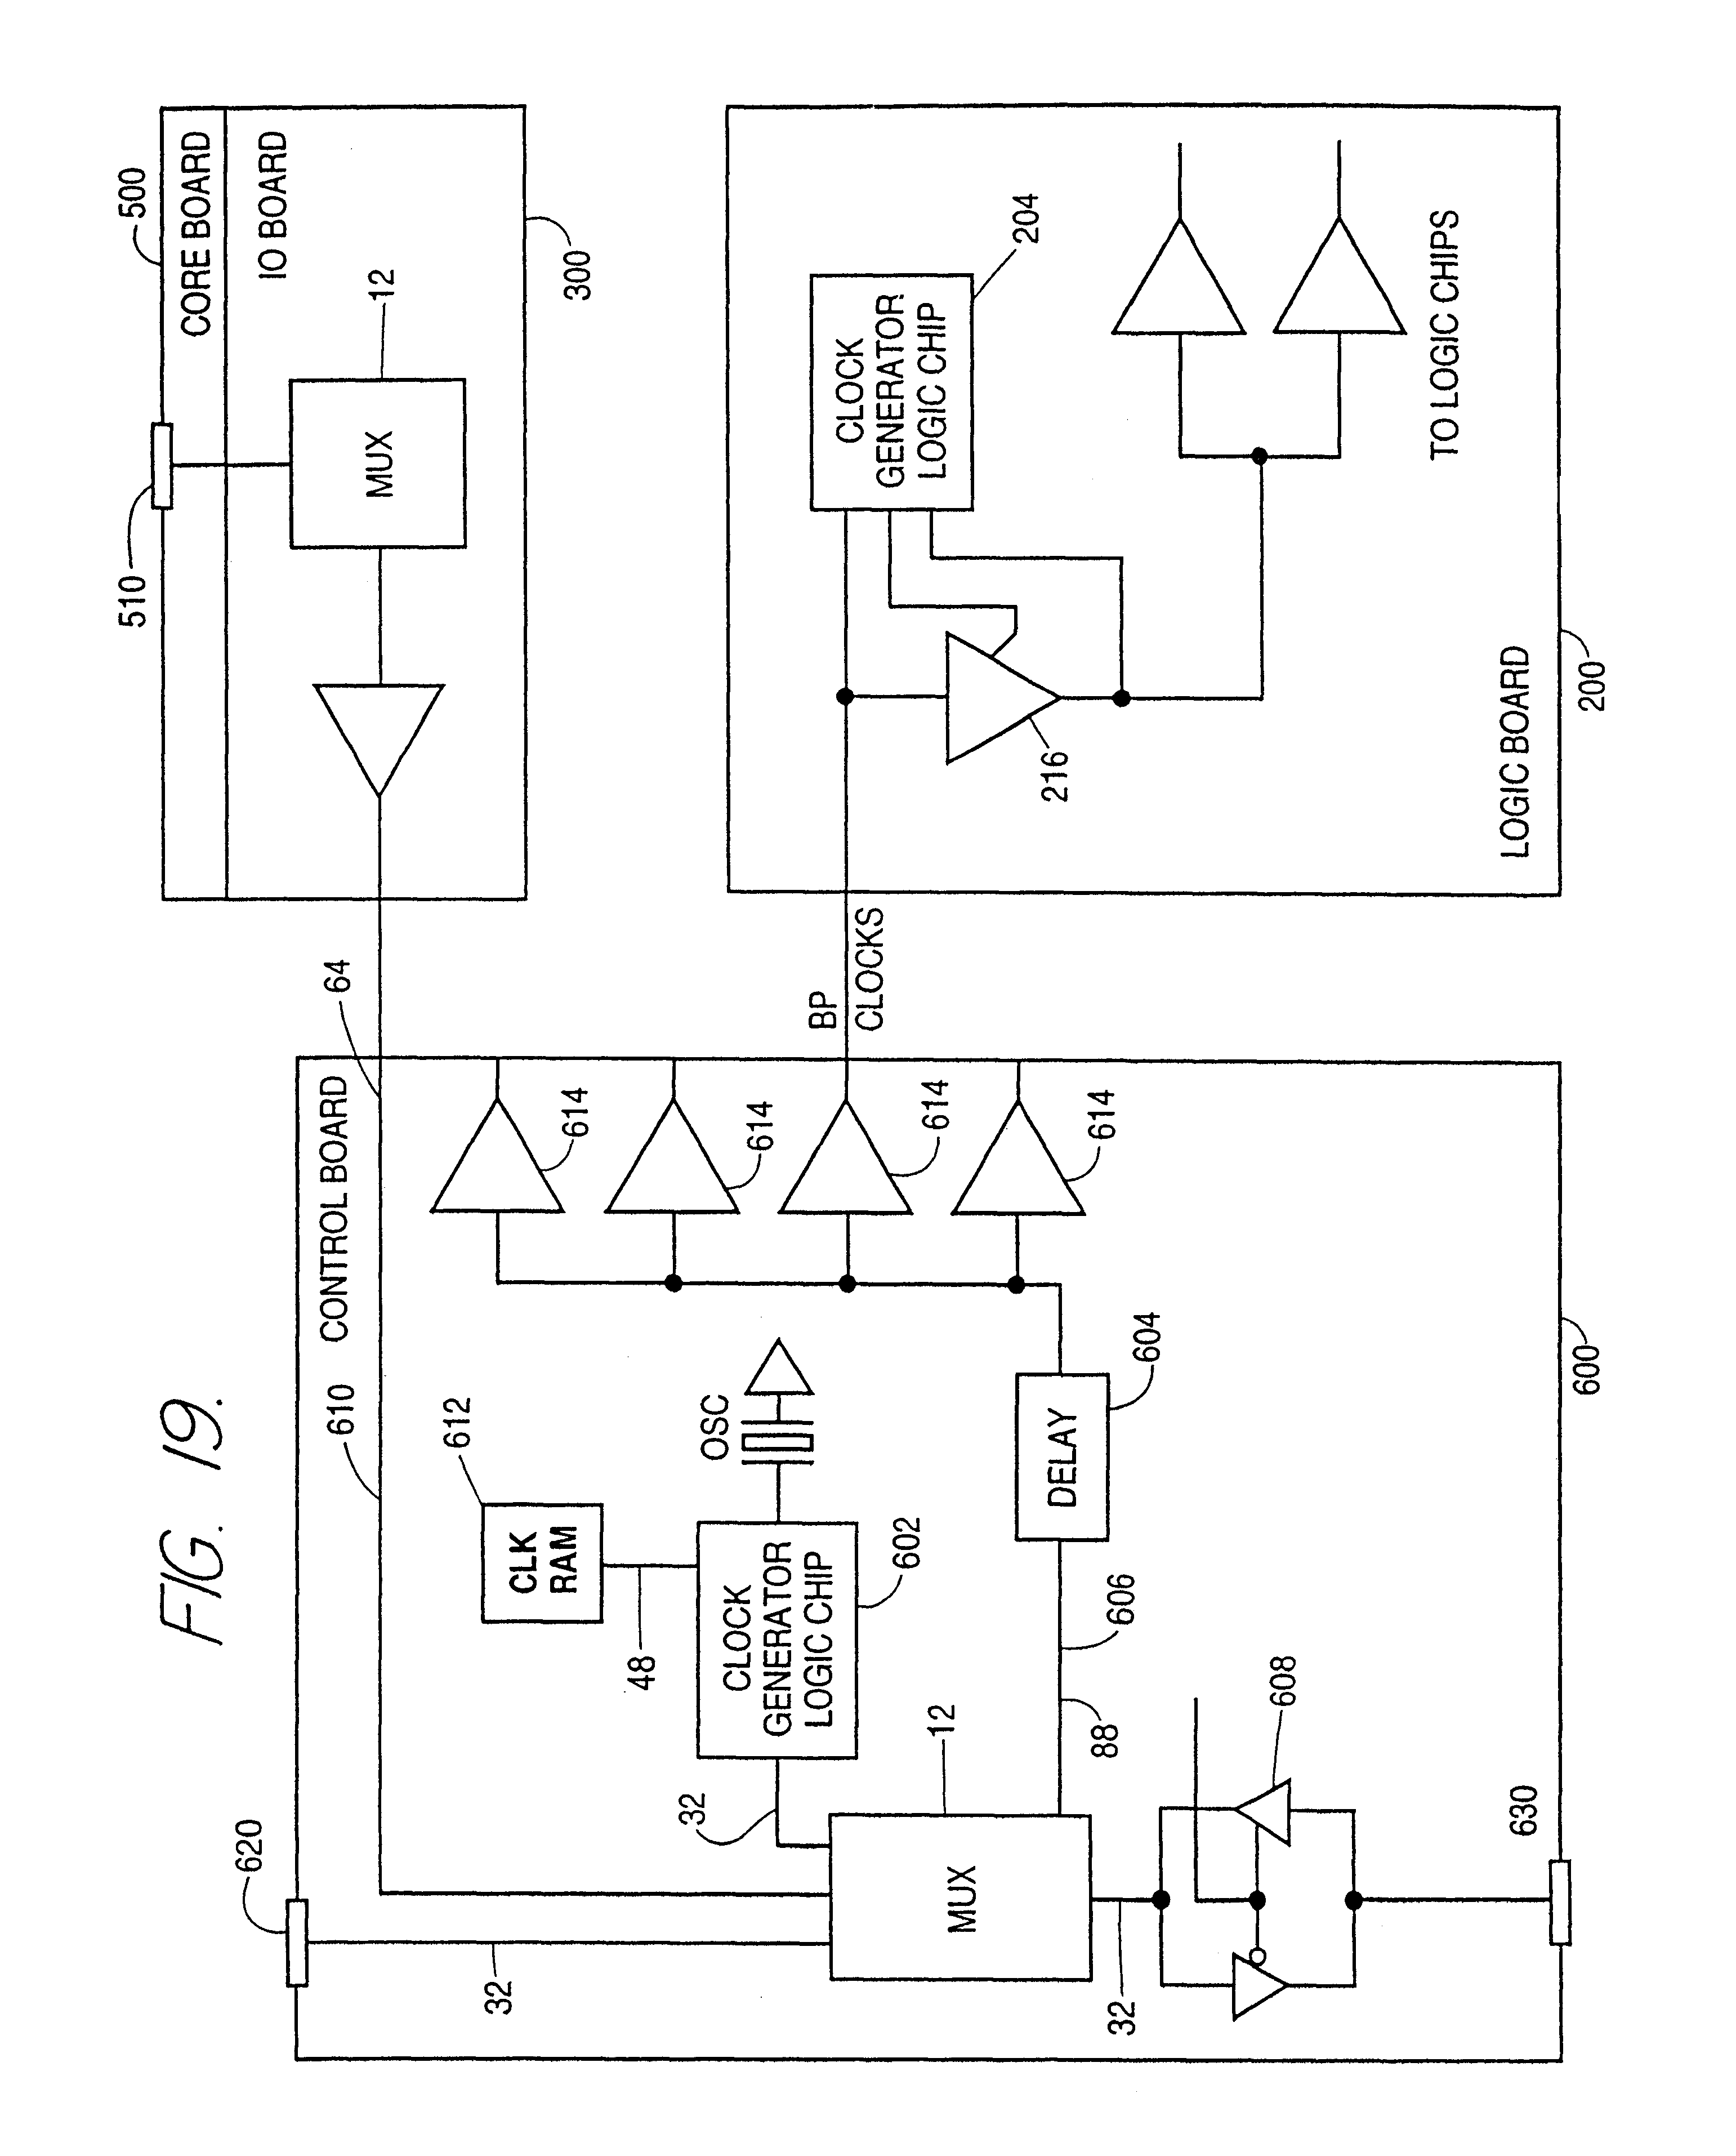 patent us6732068 - memory circuit for use in hardware emulation system